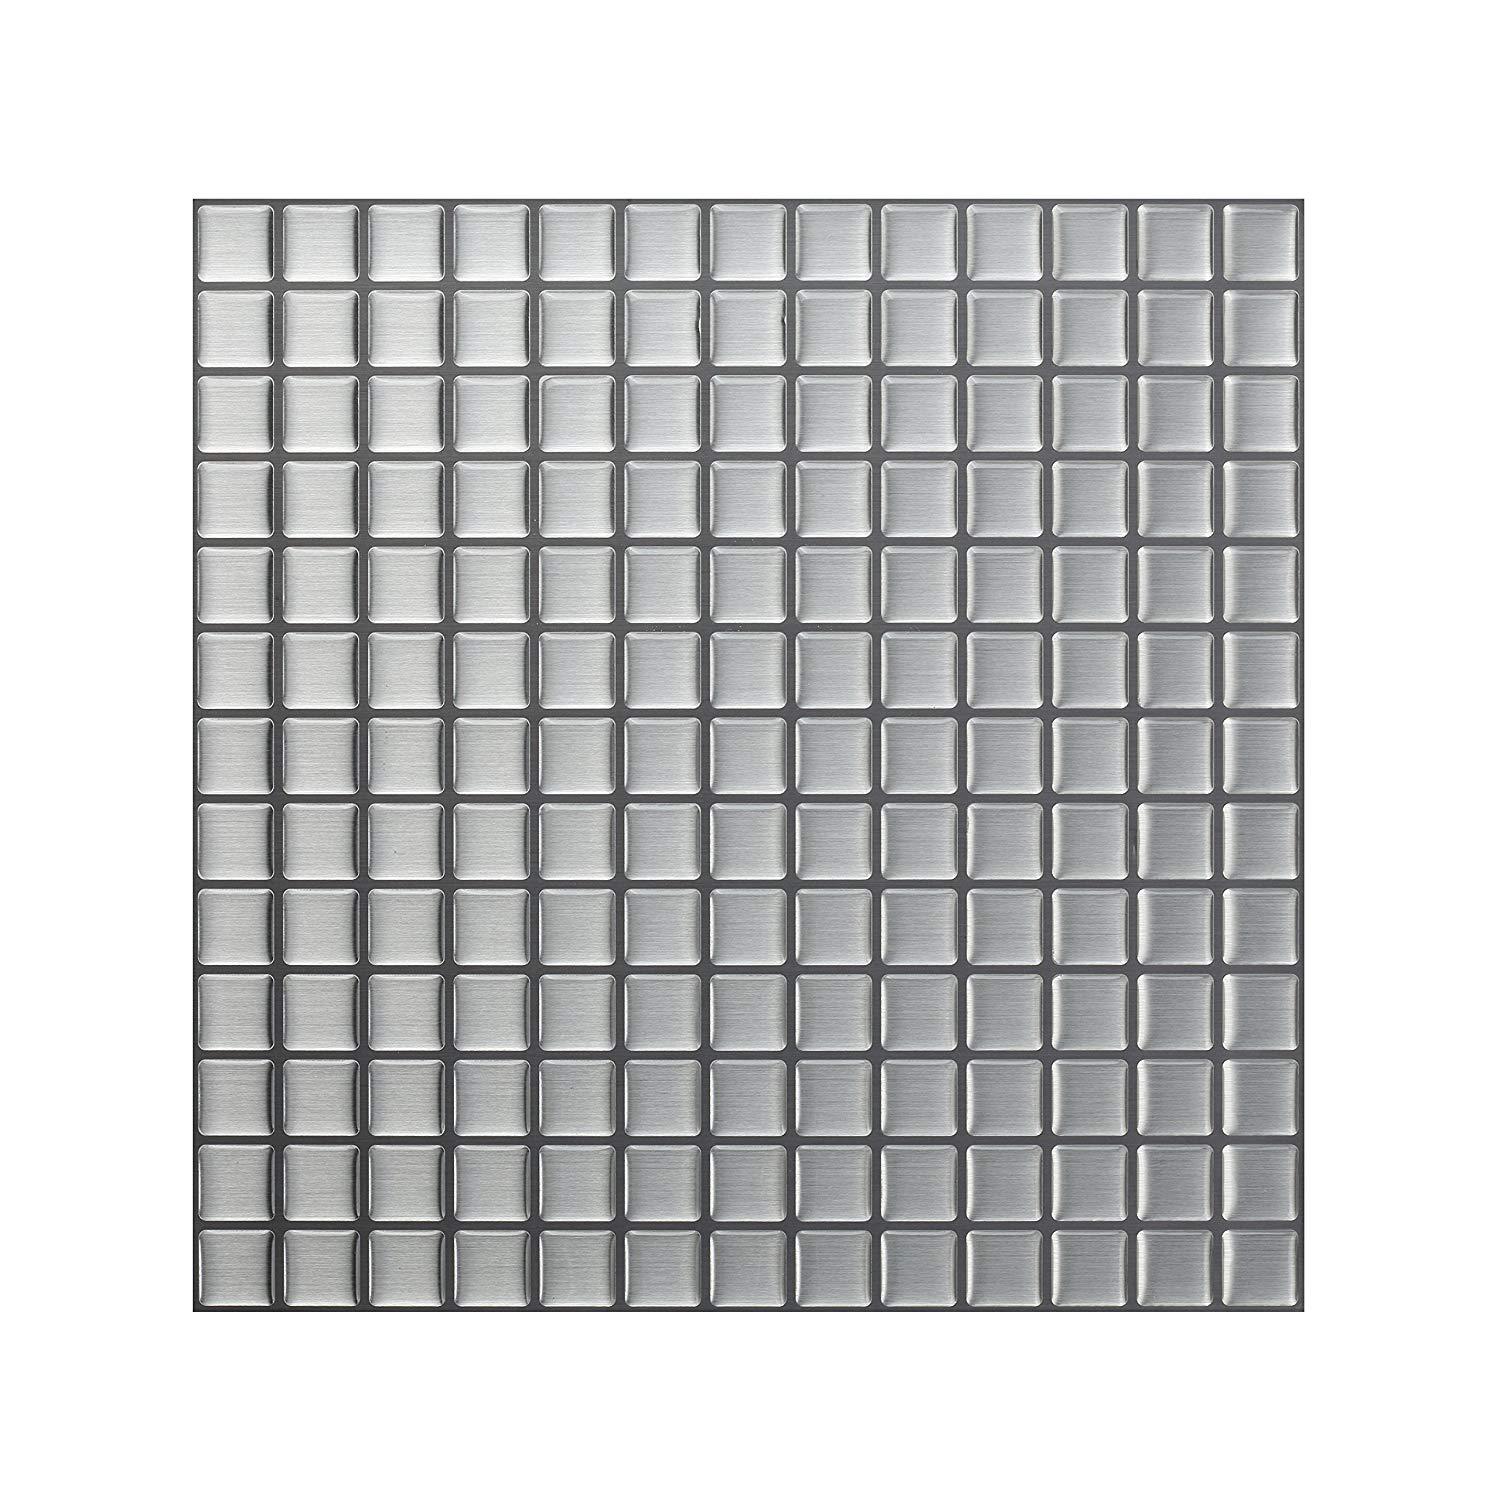 - Tic Tac Tiles_3D Peel And Stick Wall Tile_Stainless Square_W:30cm